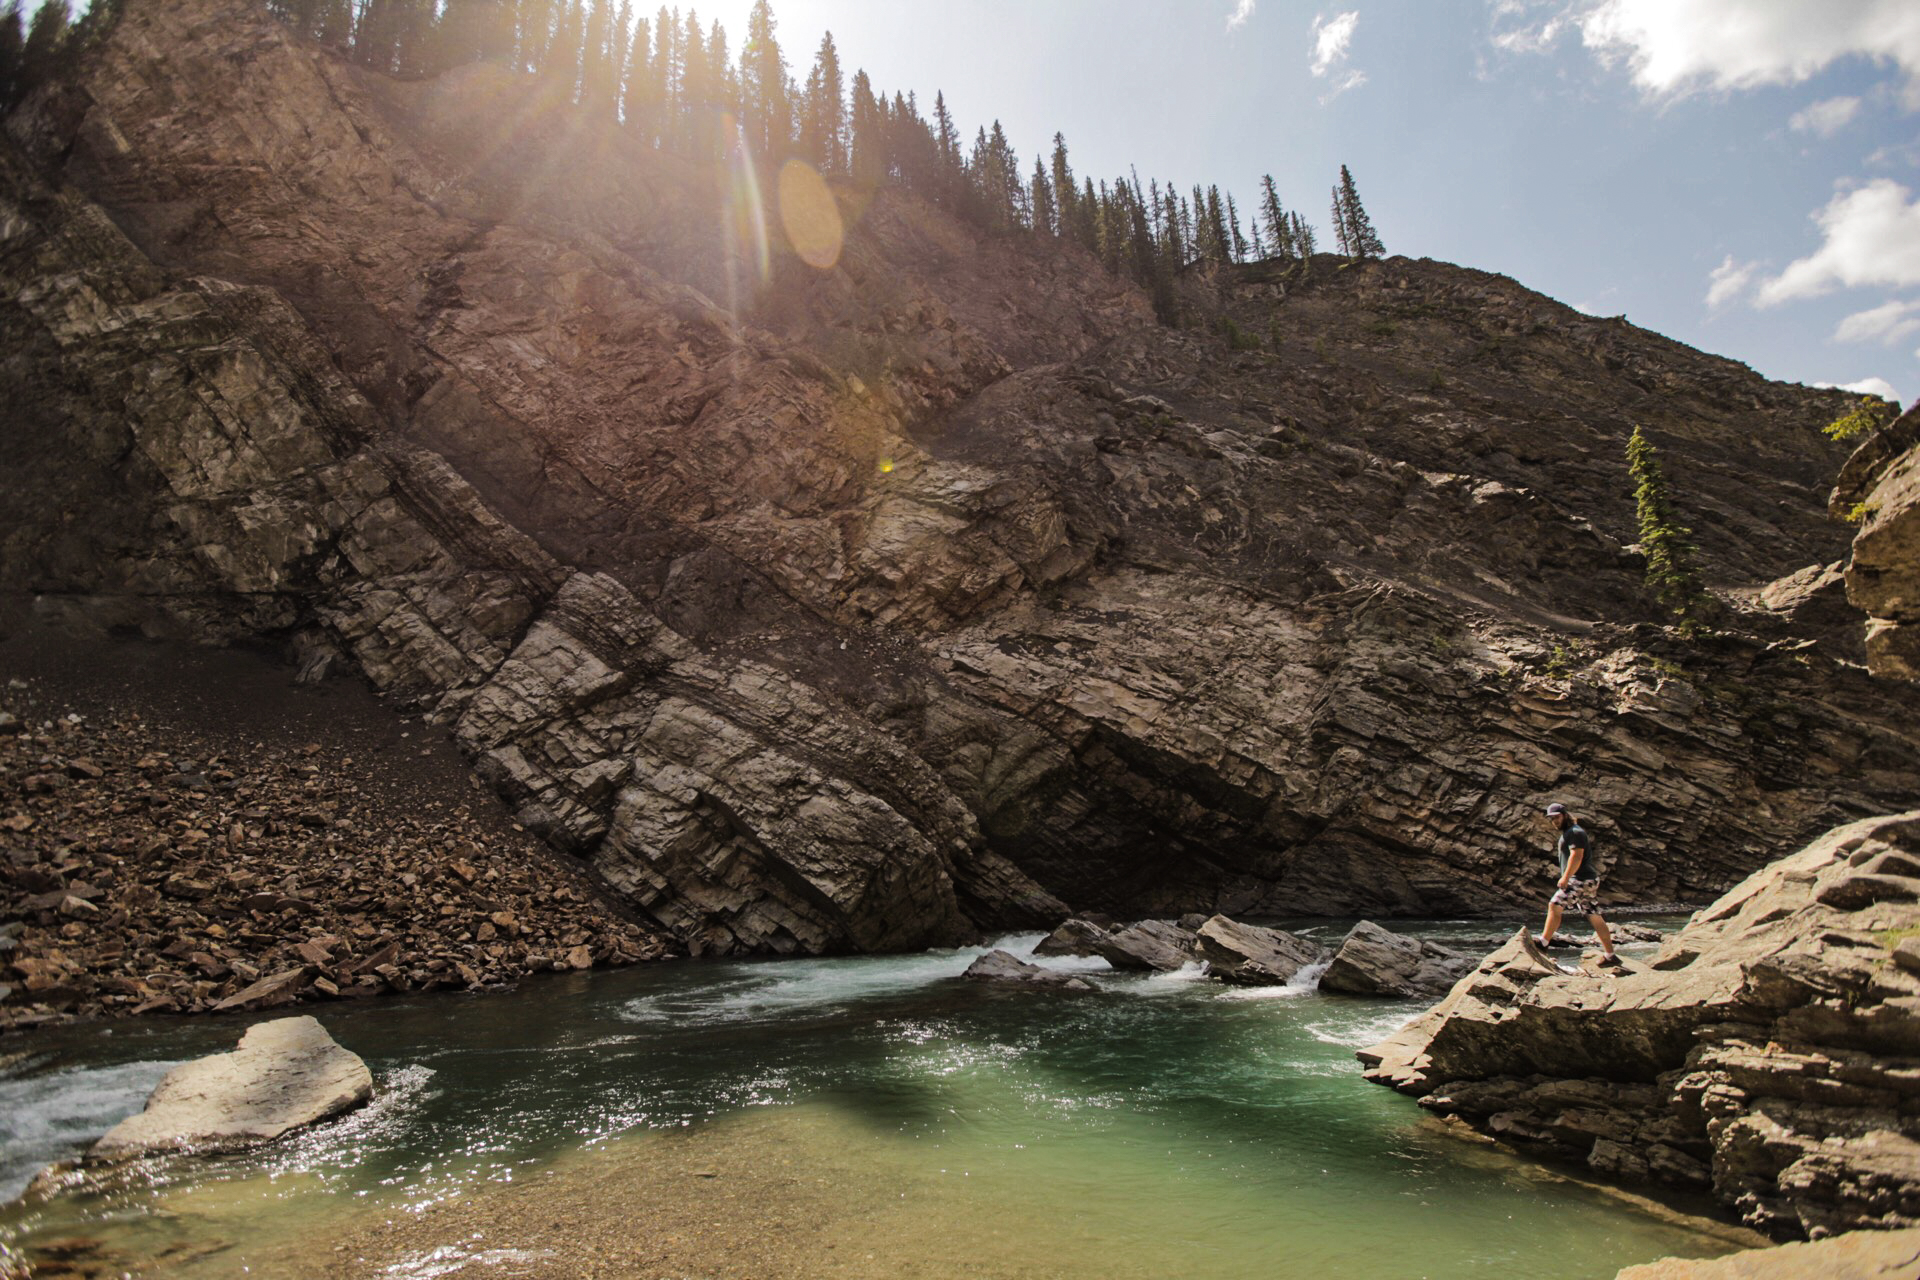 Alec and I made the trek down to the rivers edge and then up river to get a swim at the base of Ram Falls.